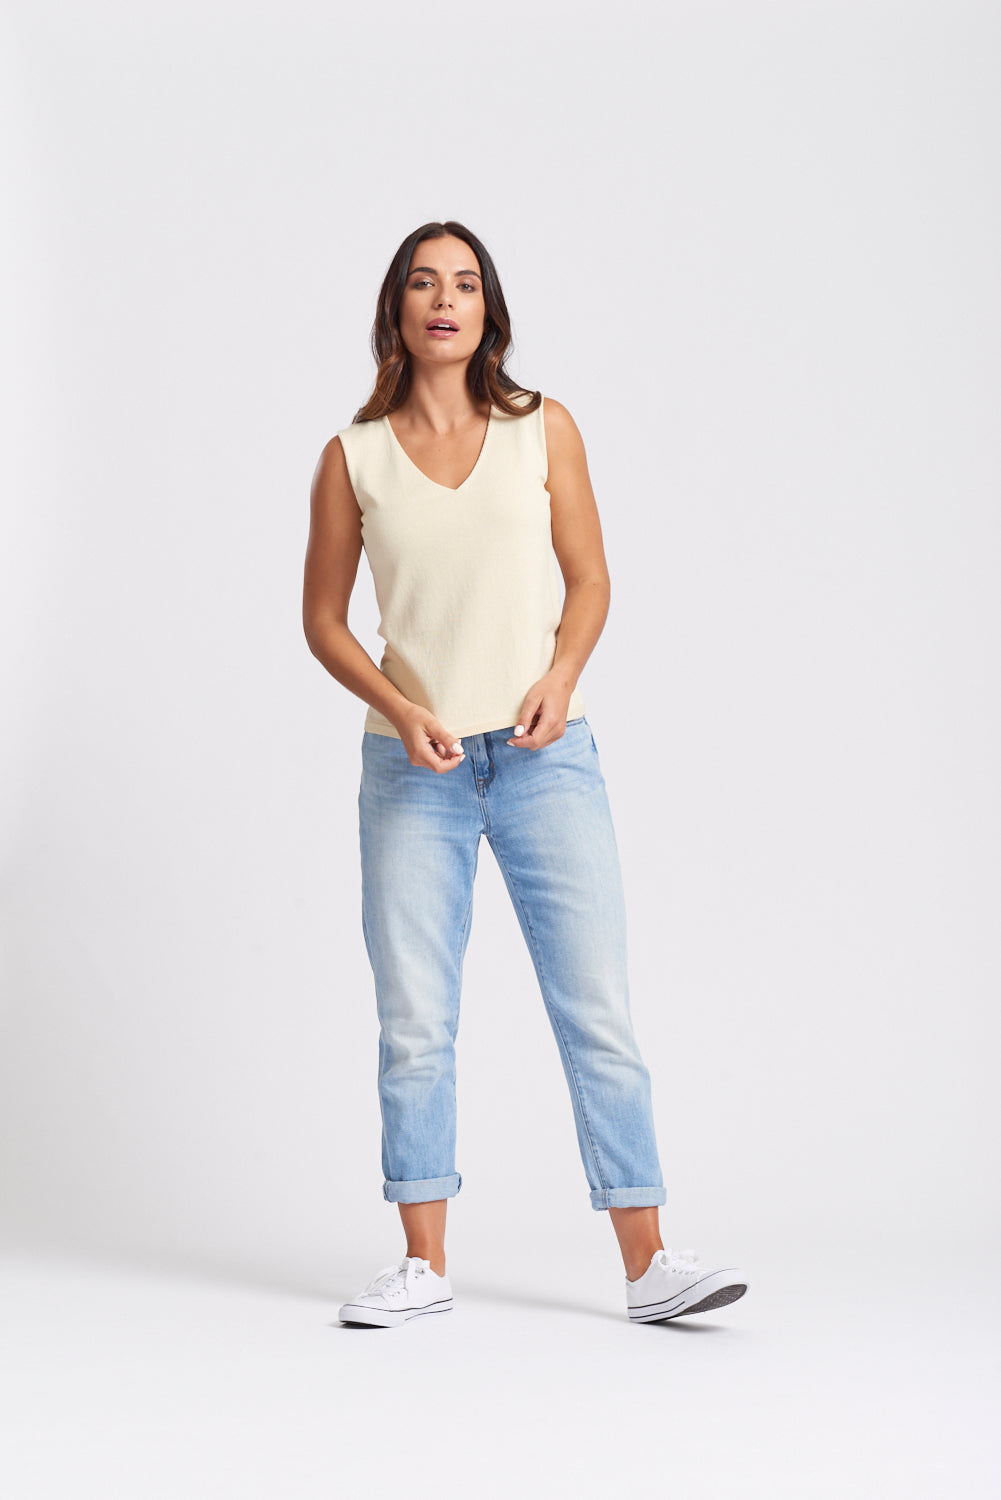 Sleeveless V Neck Top - Buttermilk